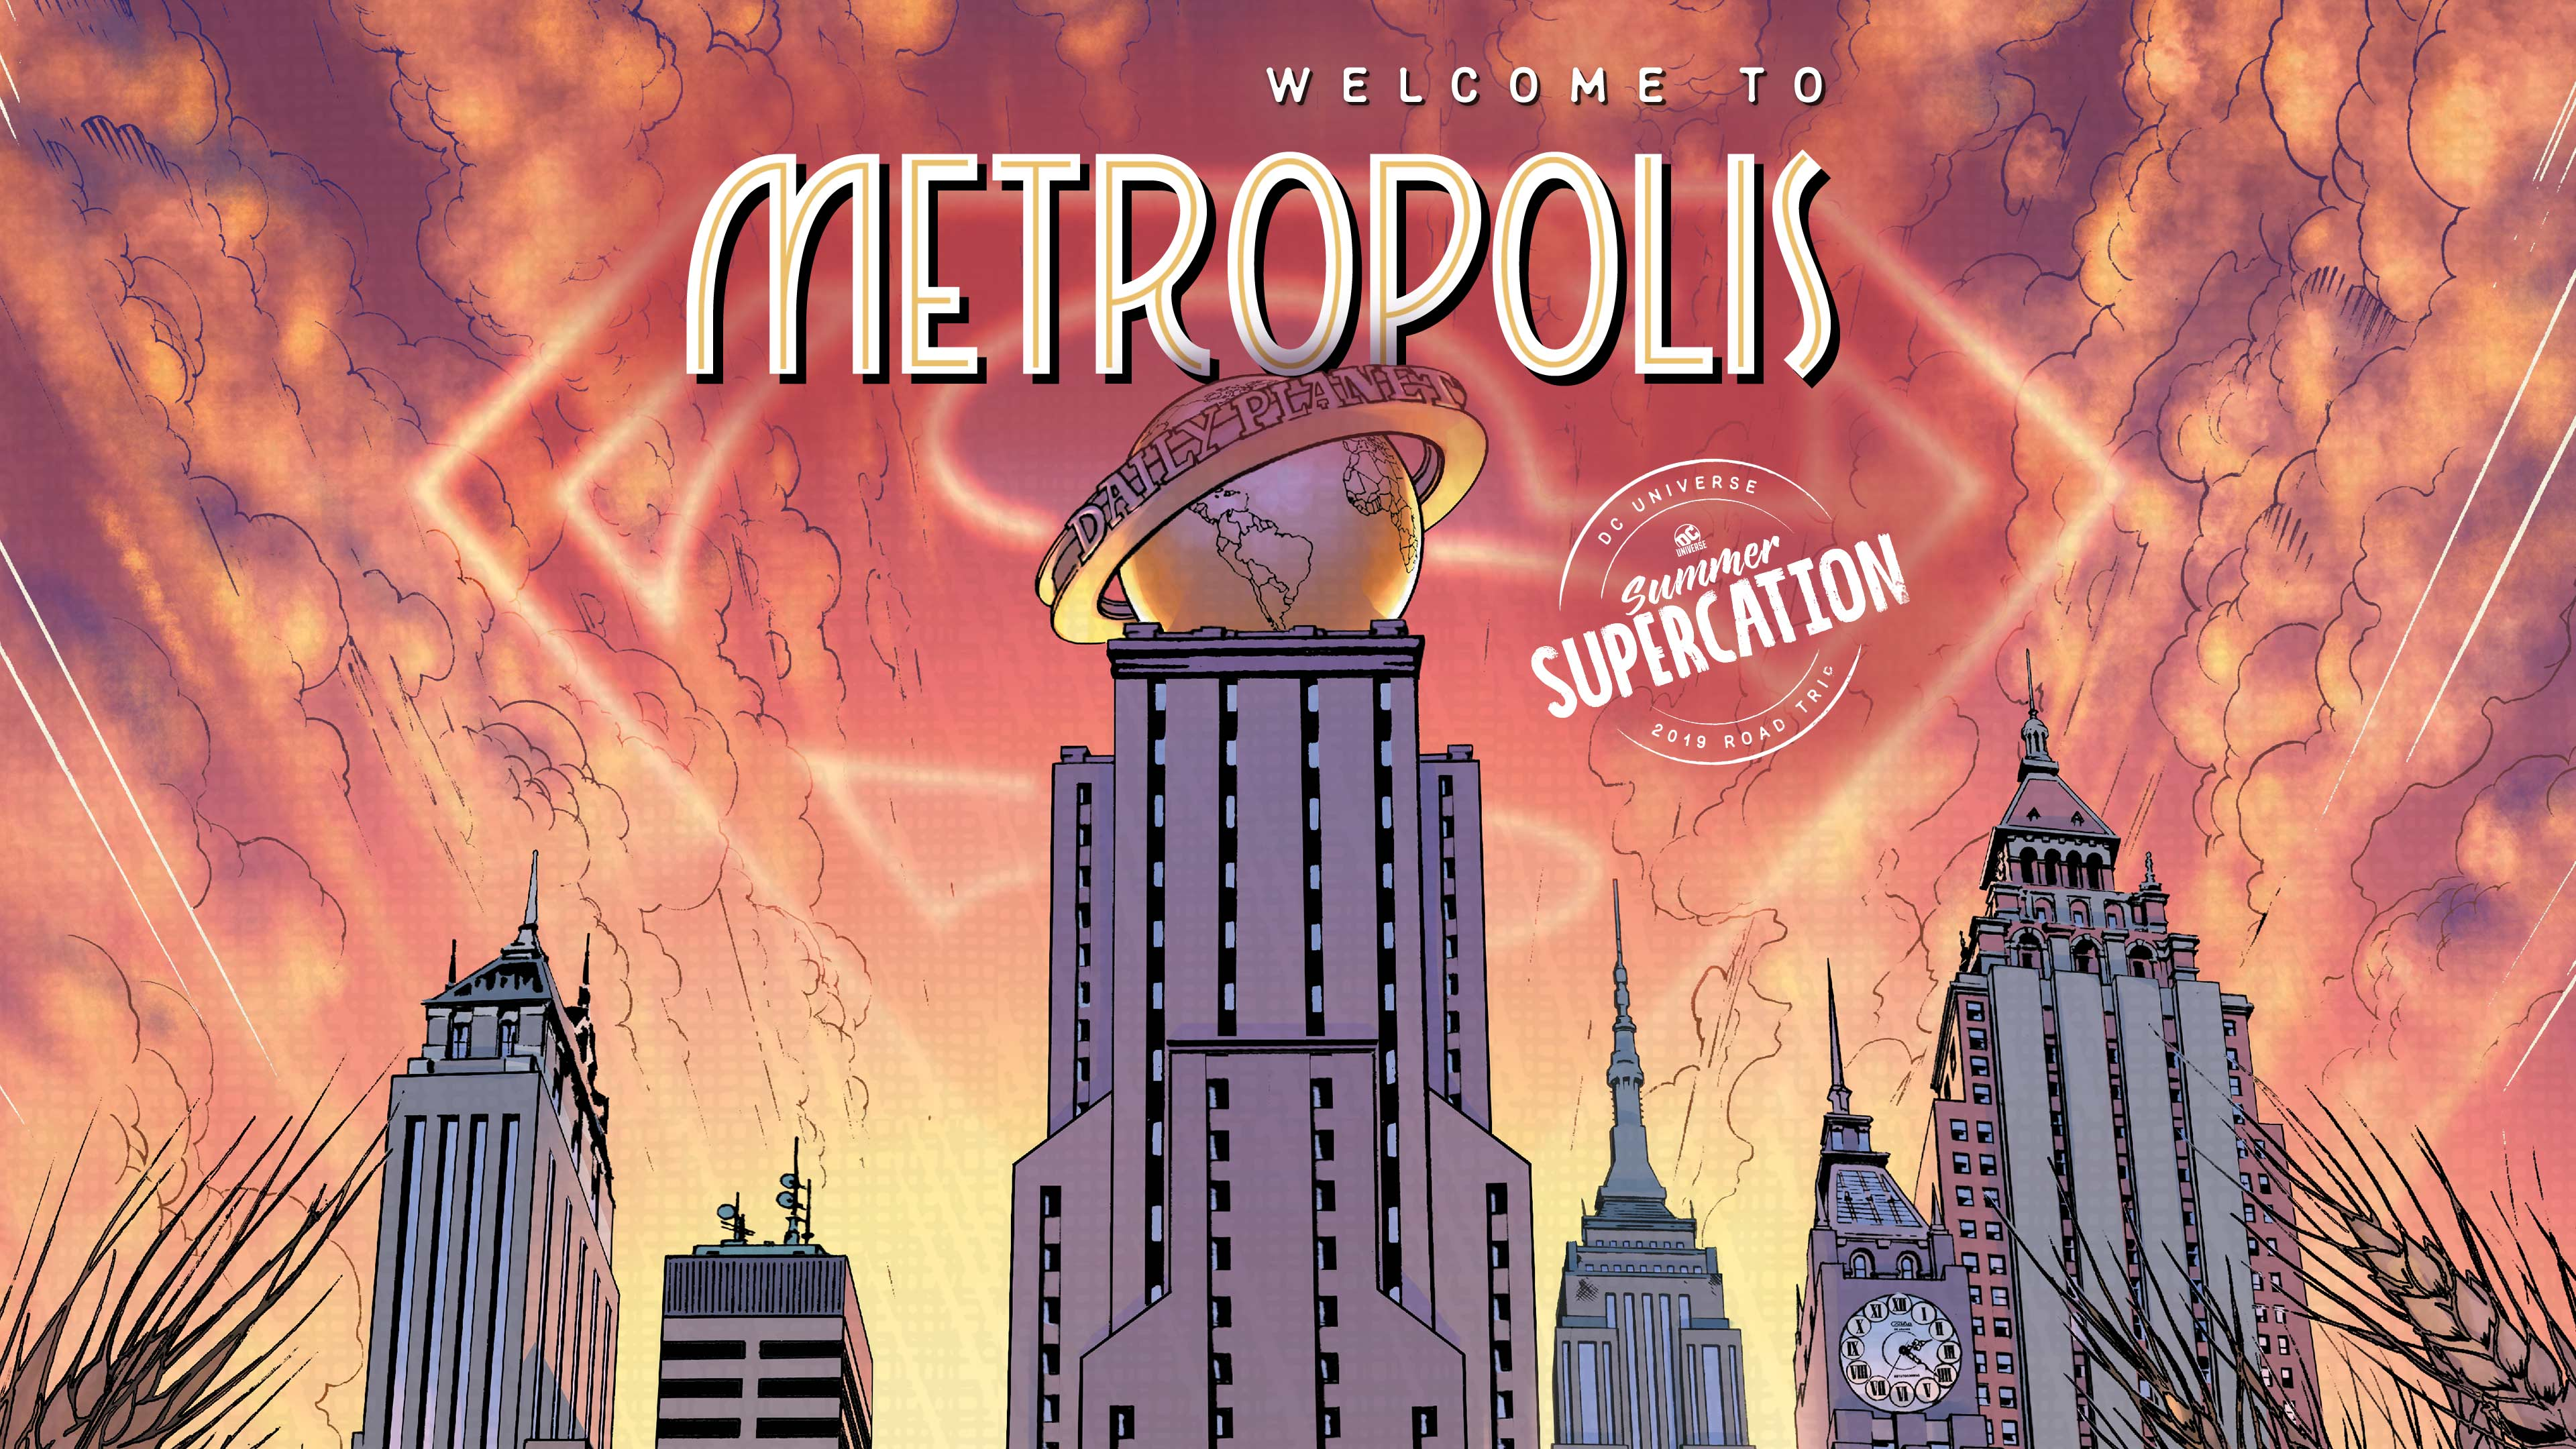 summer-supercation-metropolis-hero-c-v2.jpg